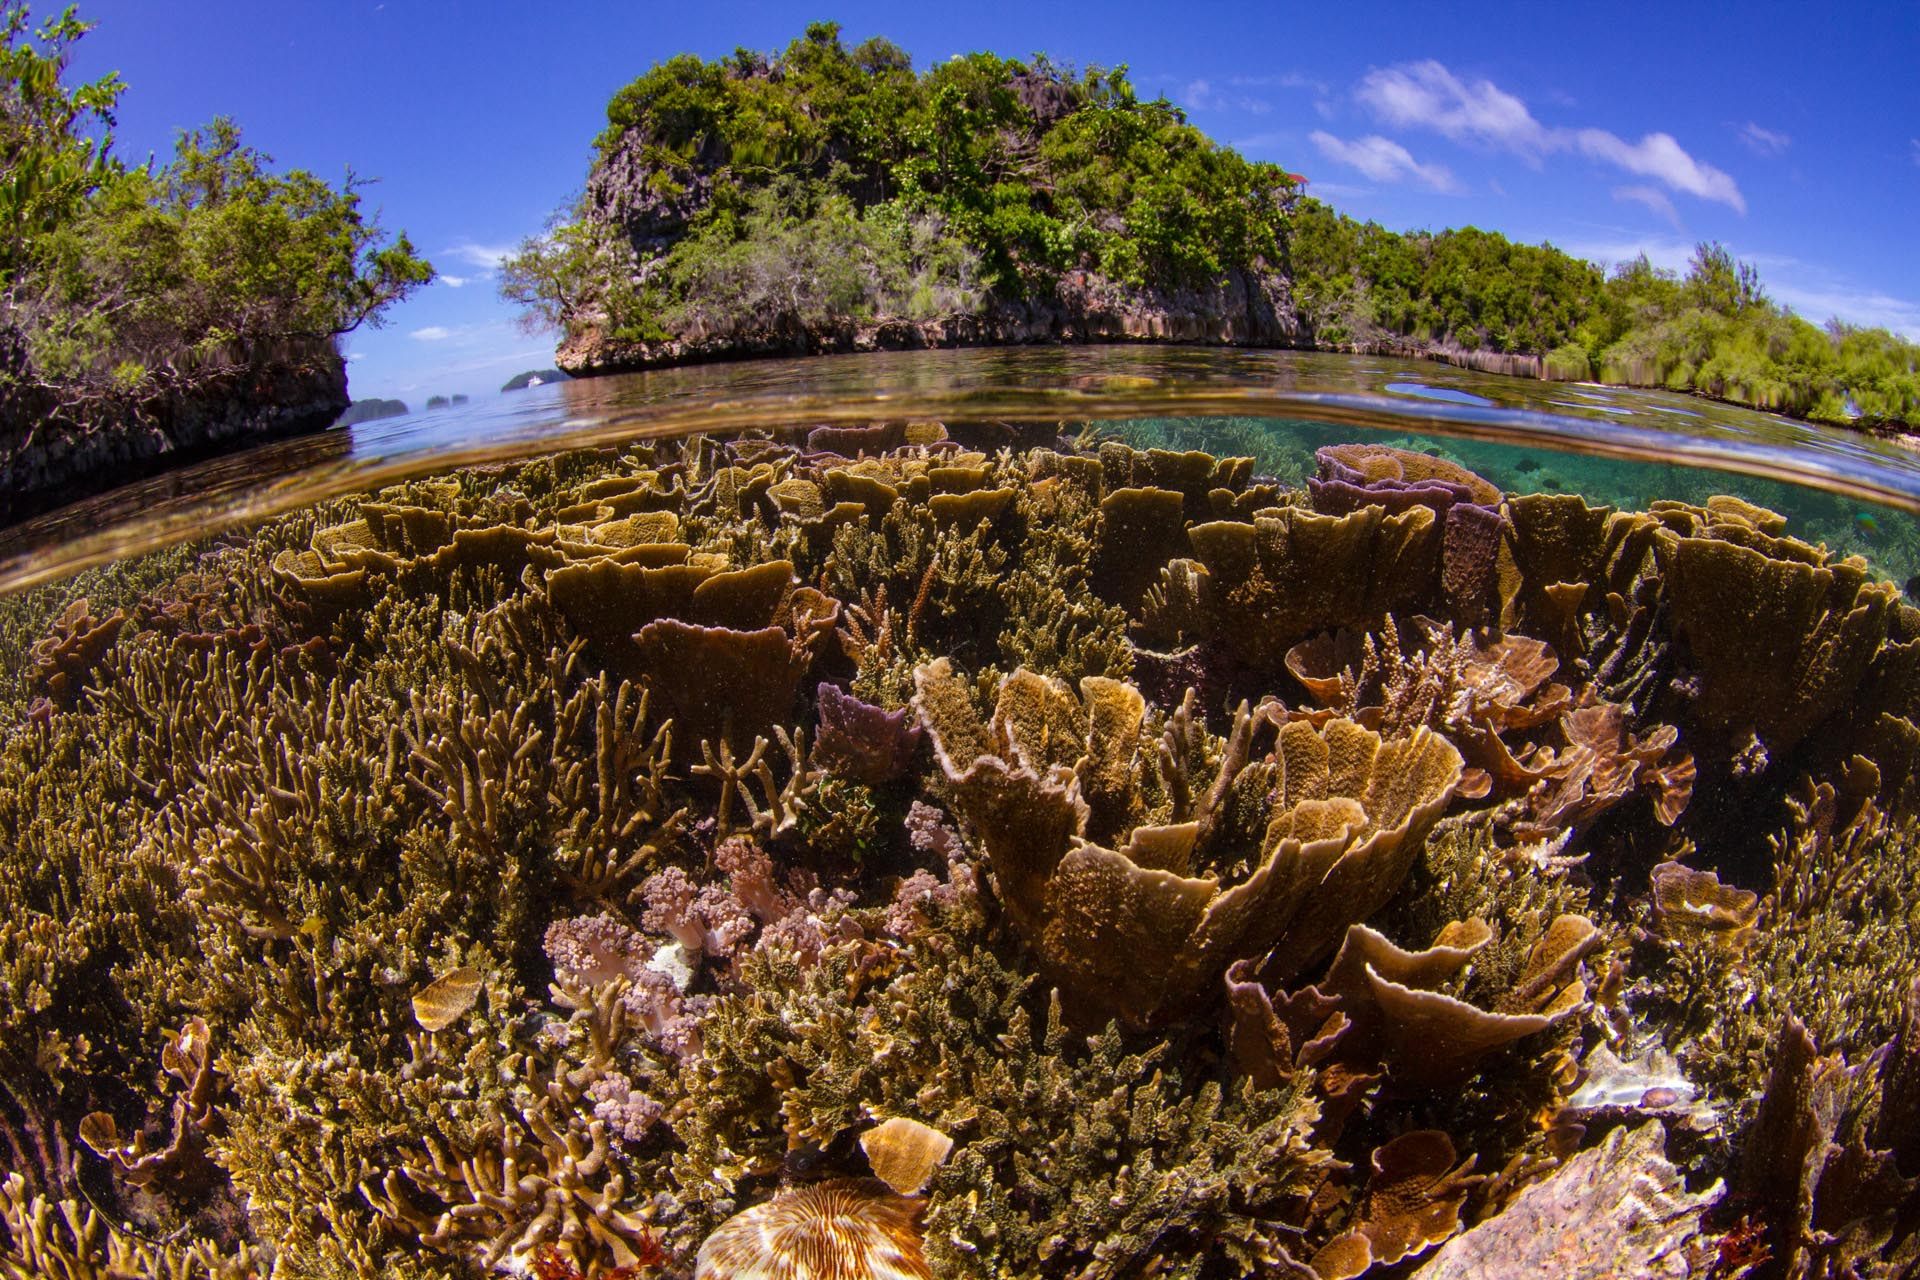 split shot of hard coral reef and raja ampat islands